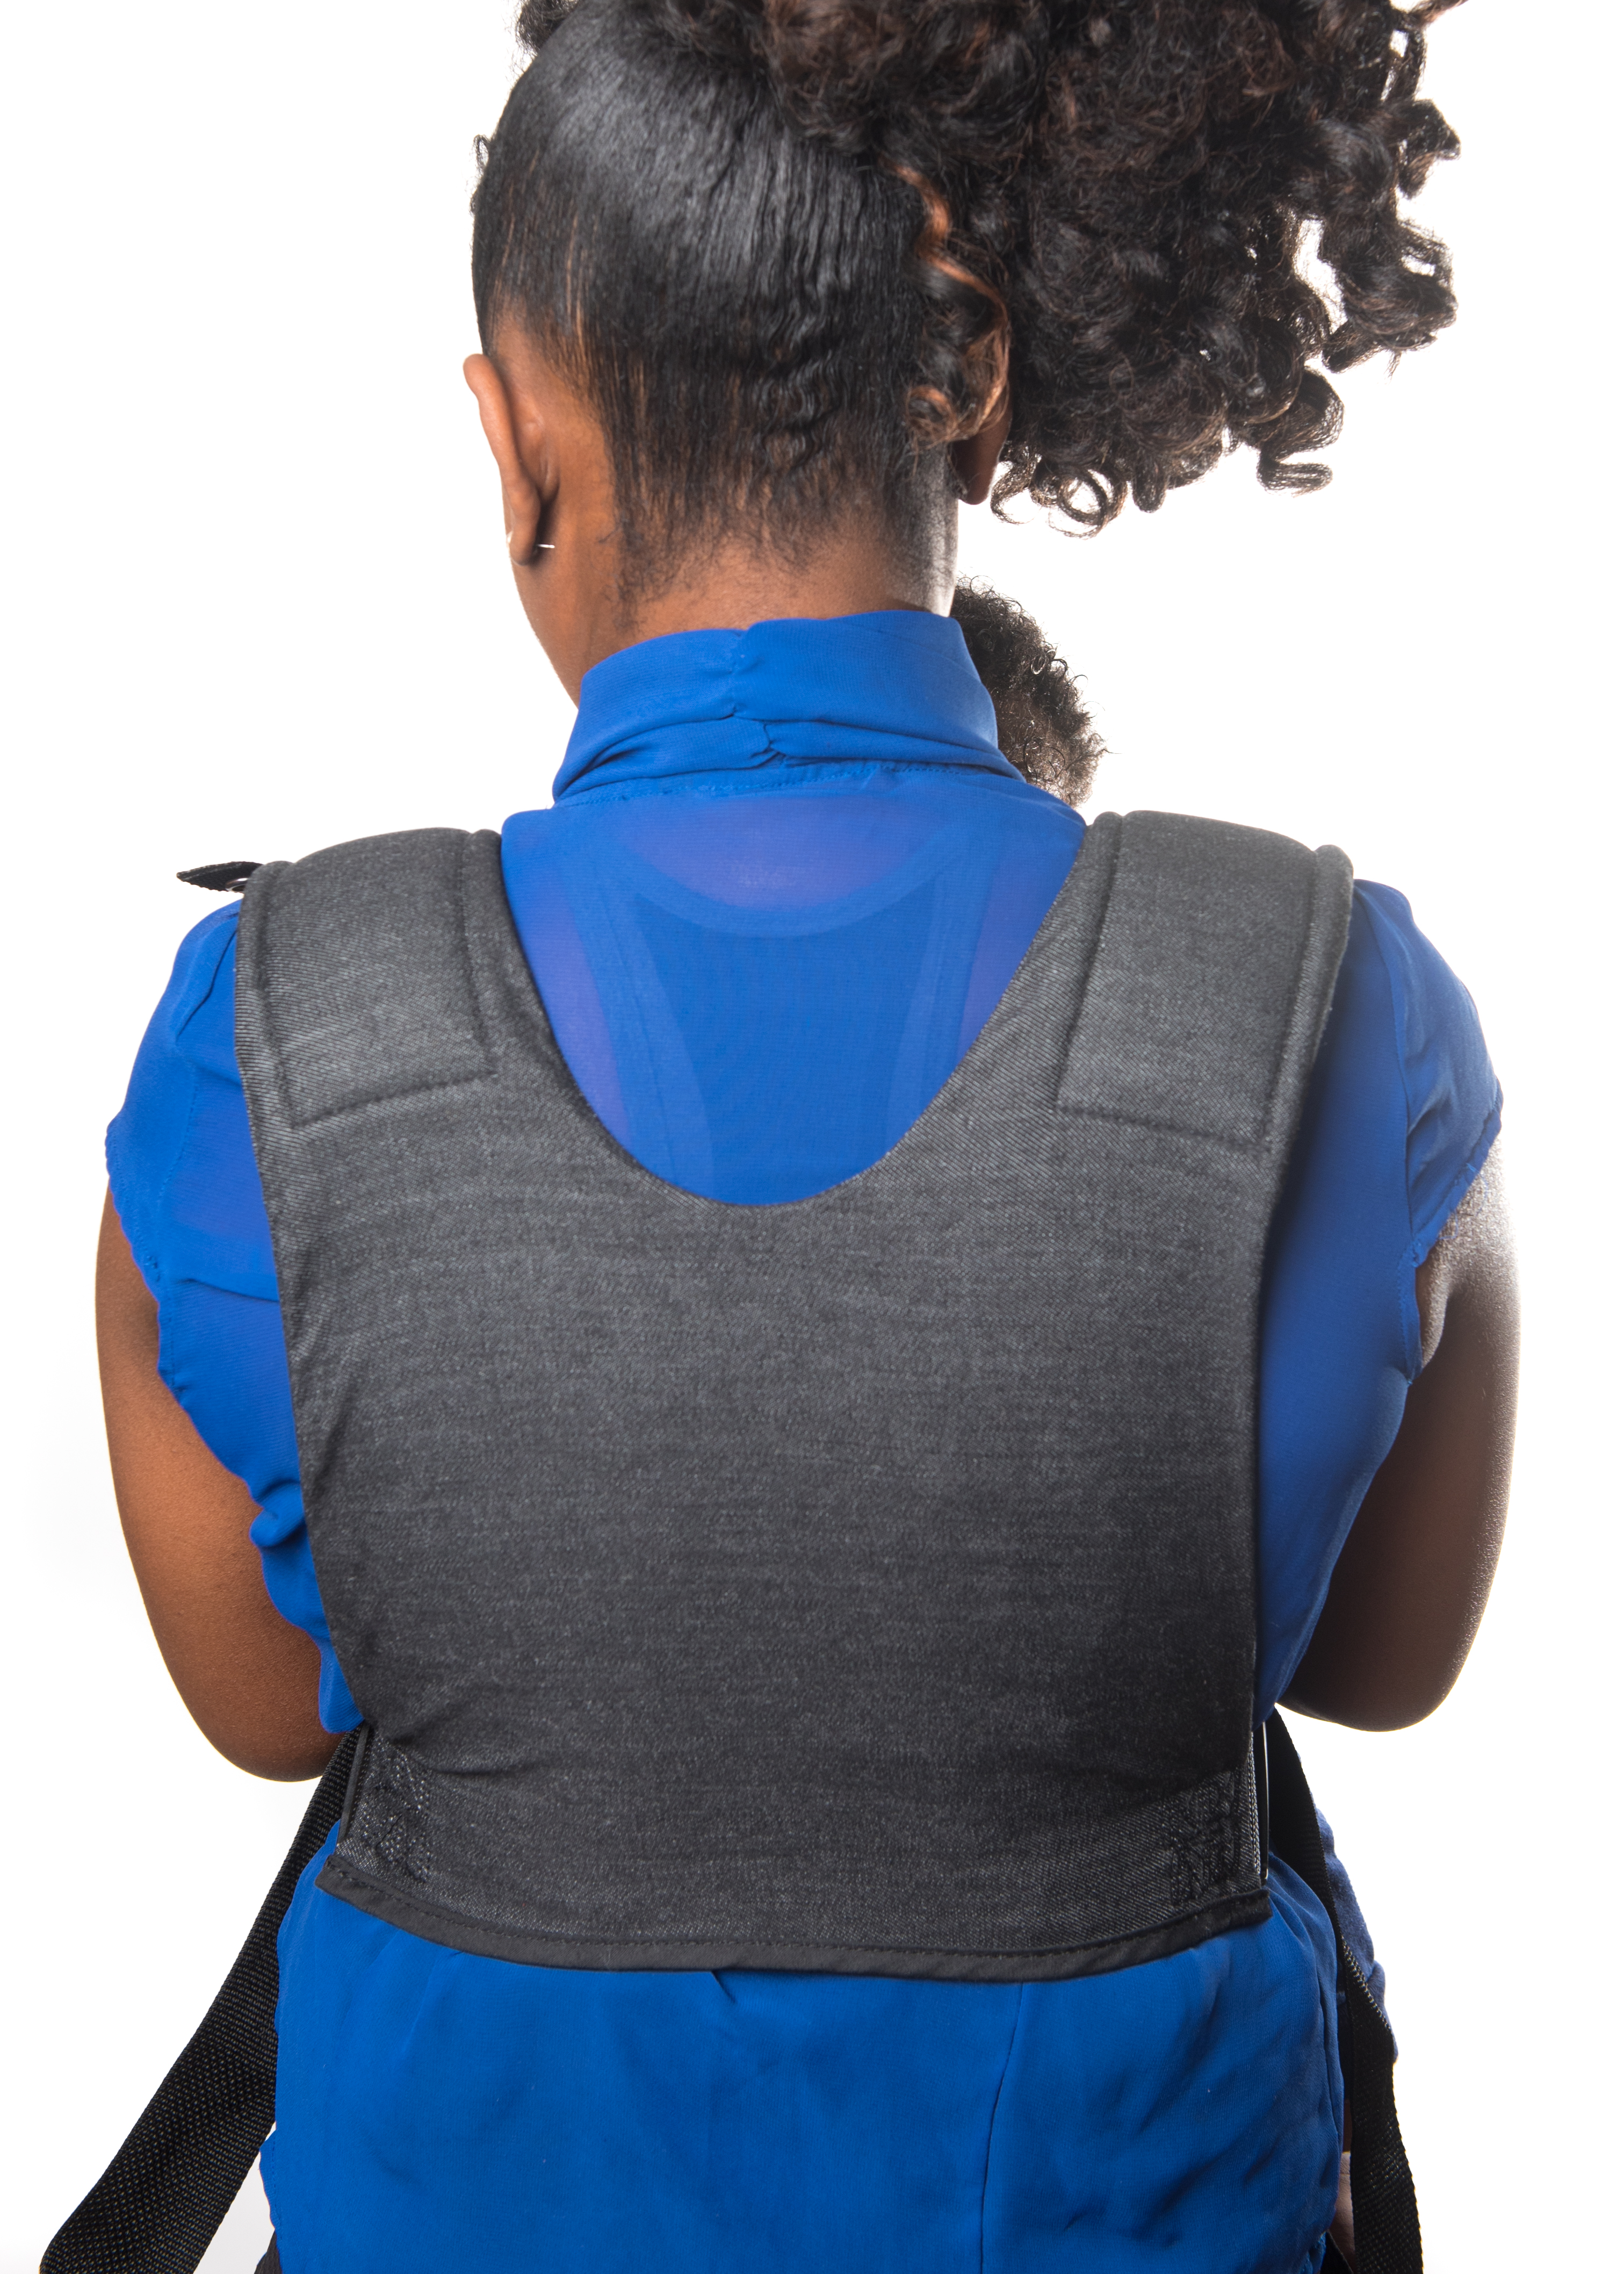 VestBack With Padded Shoulder Straps